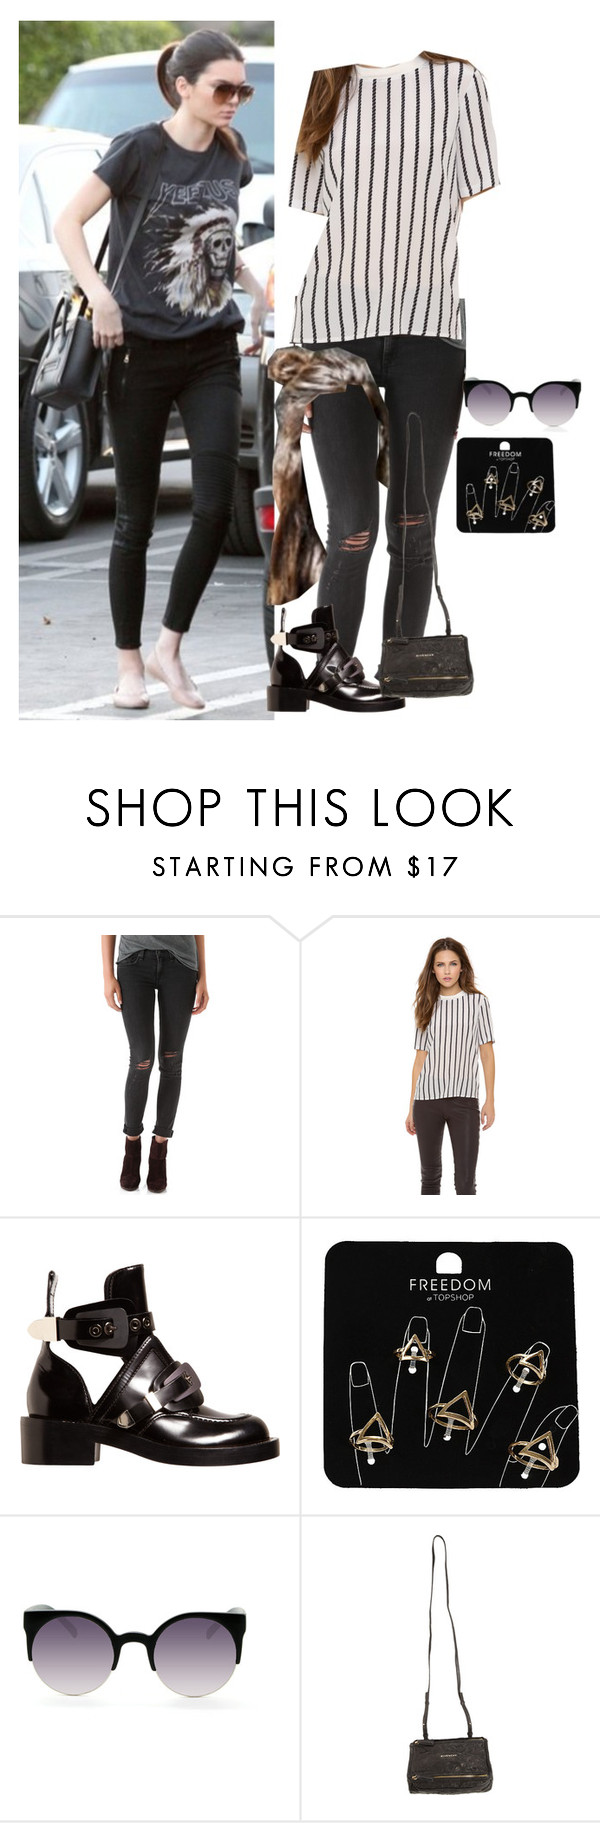 """""""B-road trip with kendall in london"""" by onedirectionnhllz ❤ liked on Polyvore featuring rag & bone/JEAN, Theory, Balenciaga, Topshop and Givenchy"""